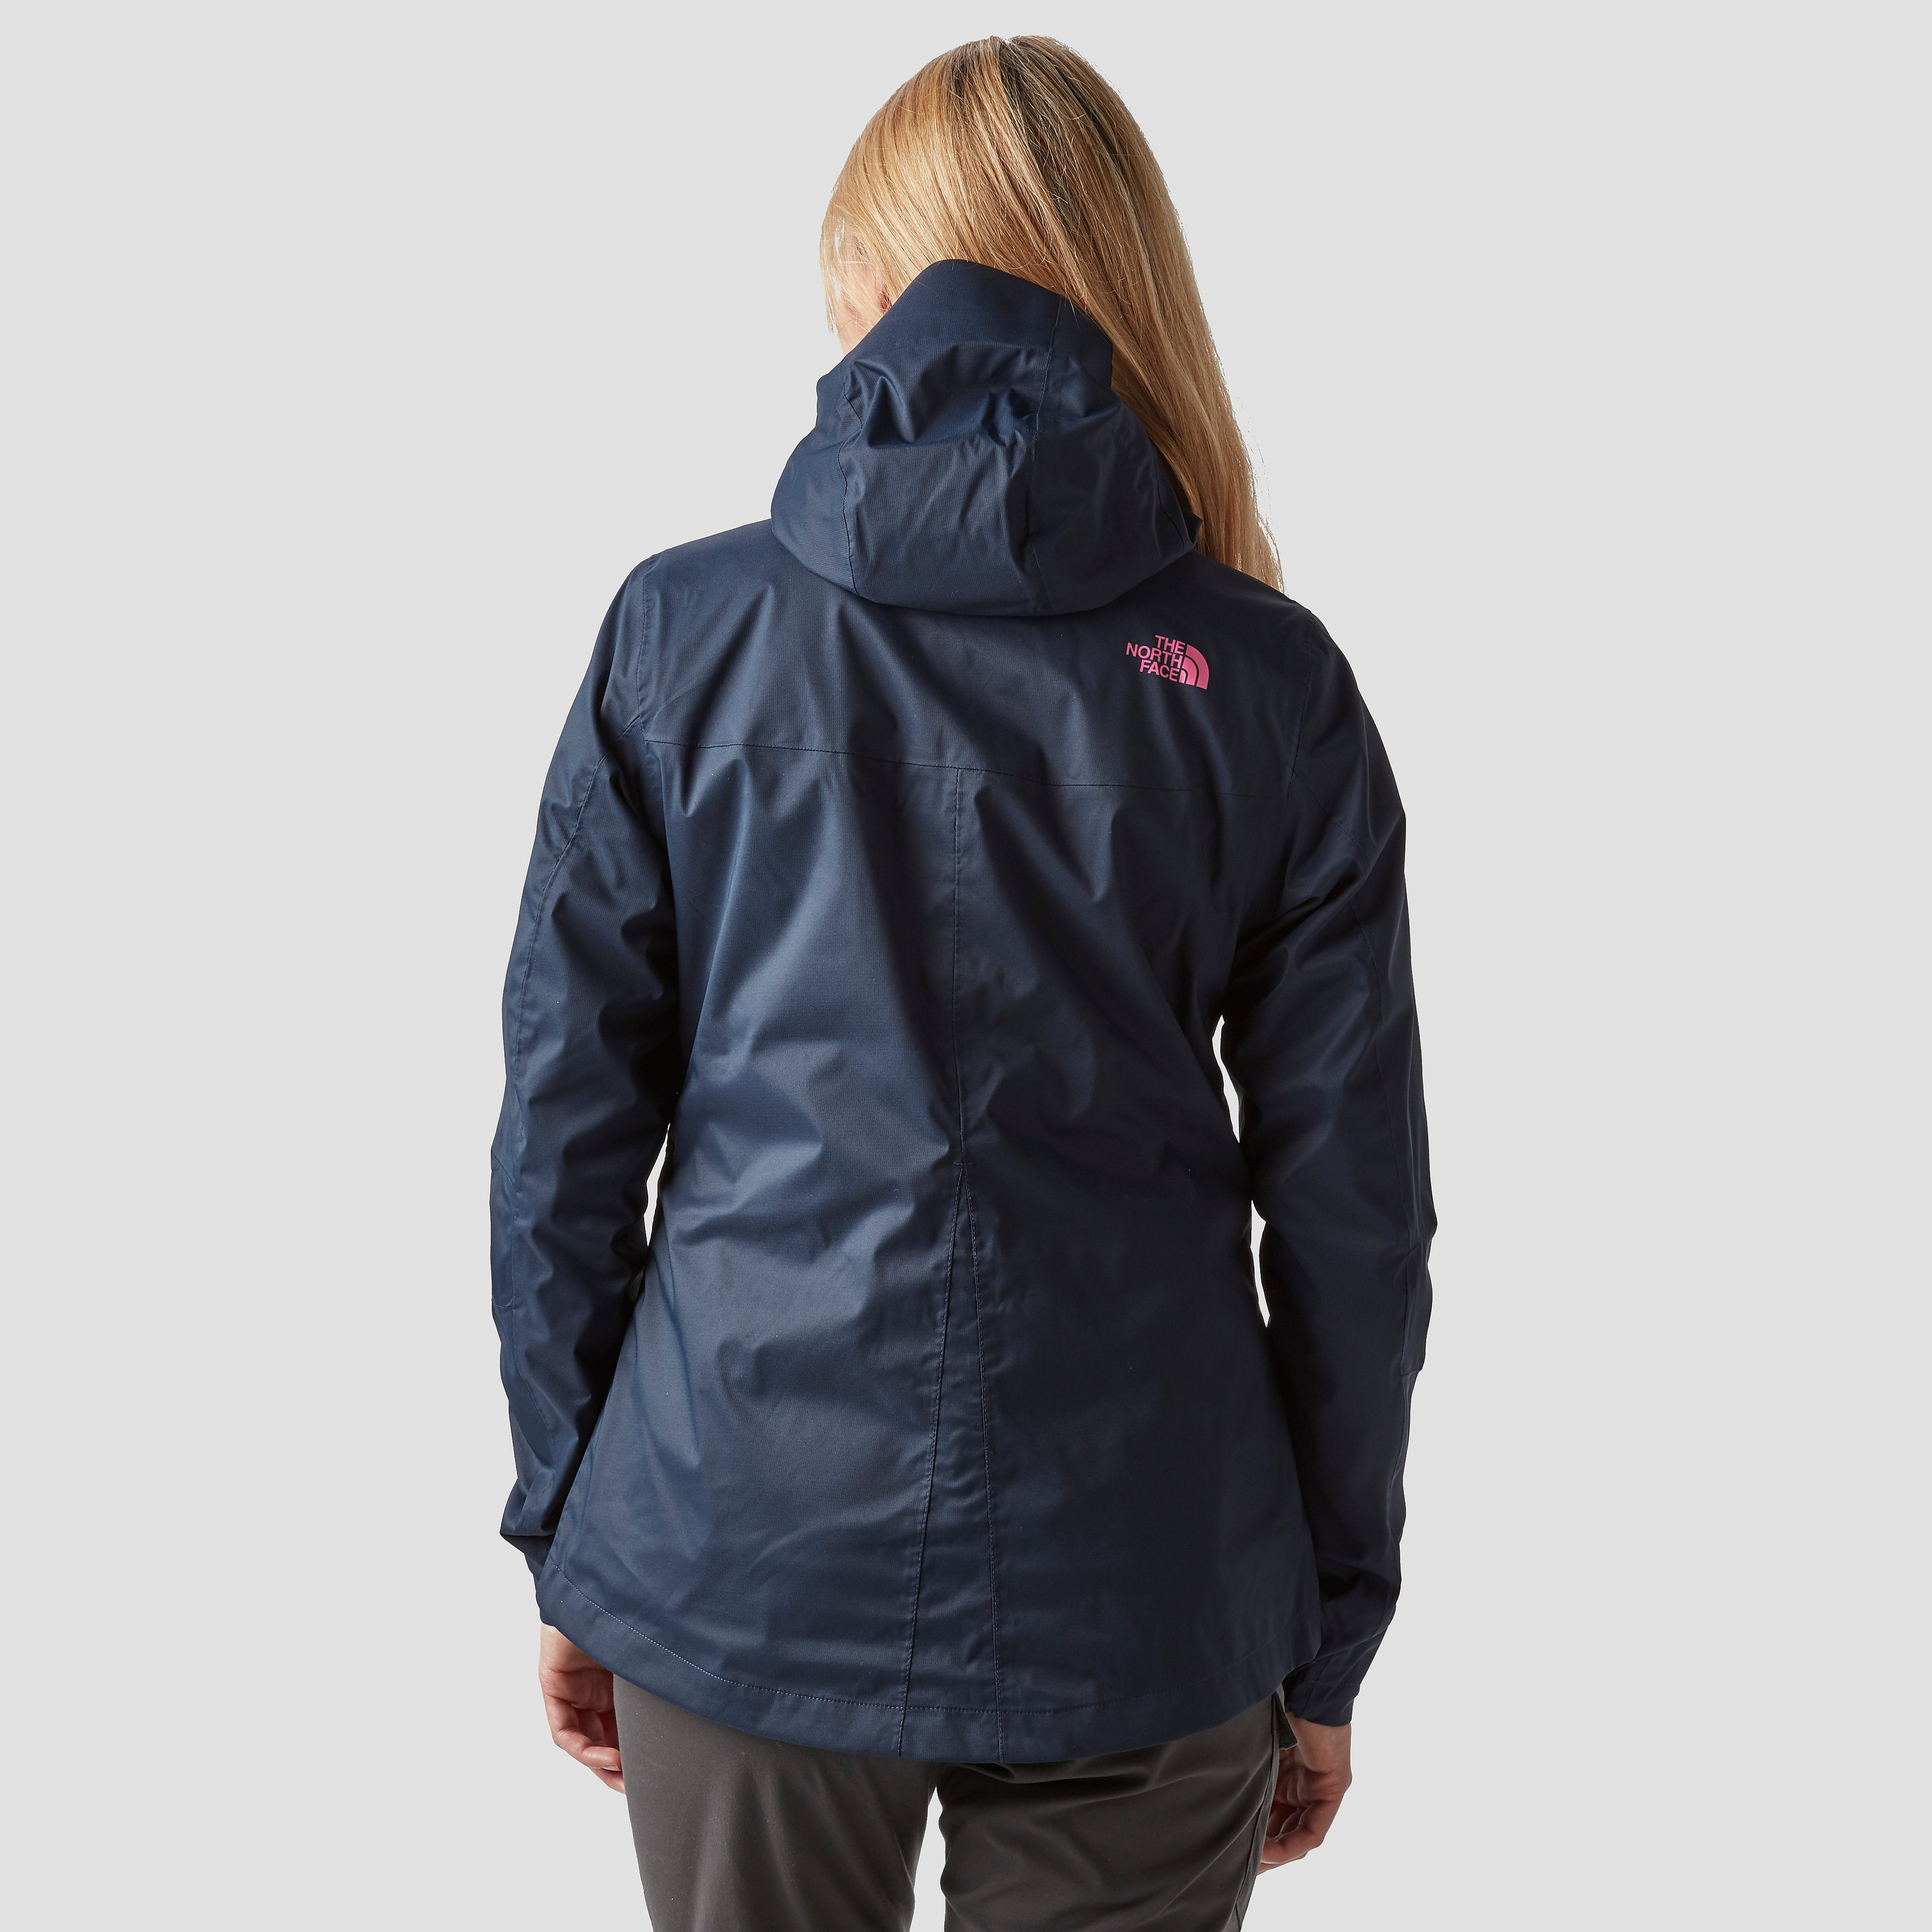 The North Face Tanken Triclimate 3 in 1 Women's  Jacket